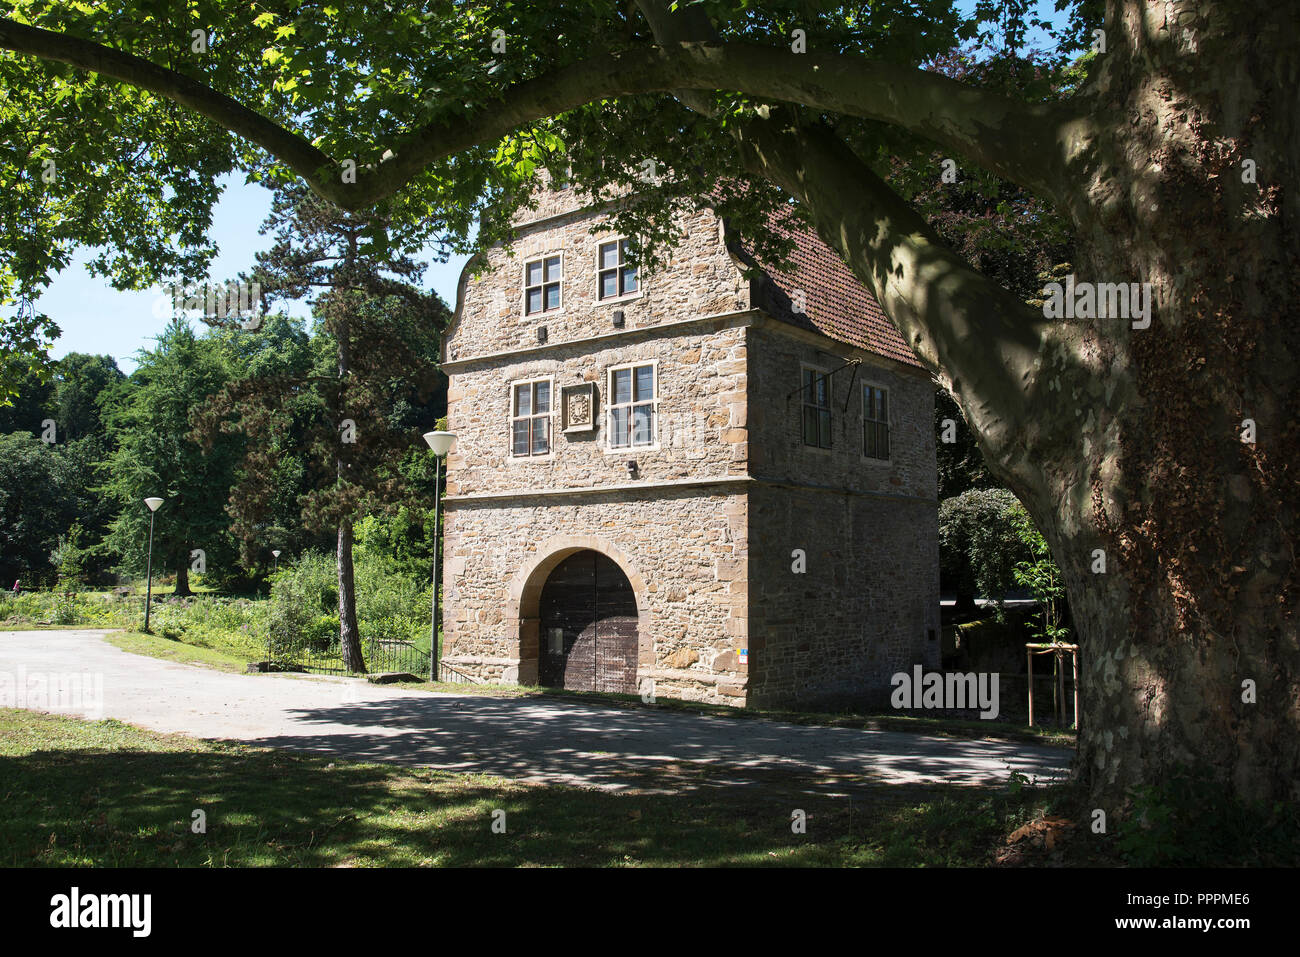 gatehouse, art gallery, Rombergpark, Dortmund, Ruhr district, North Rhine-Westphalia, Germany - Stock Image